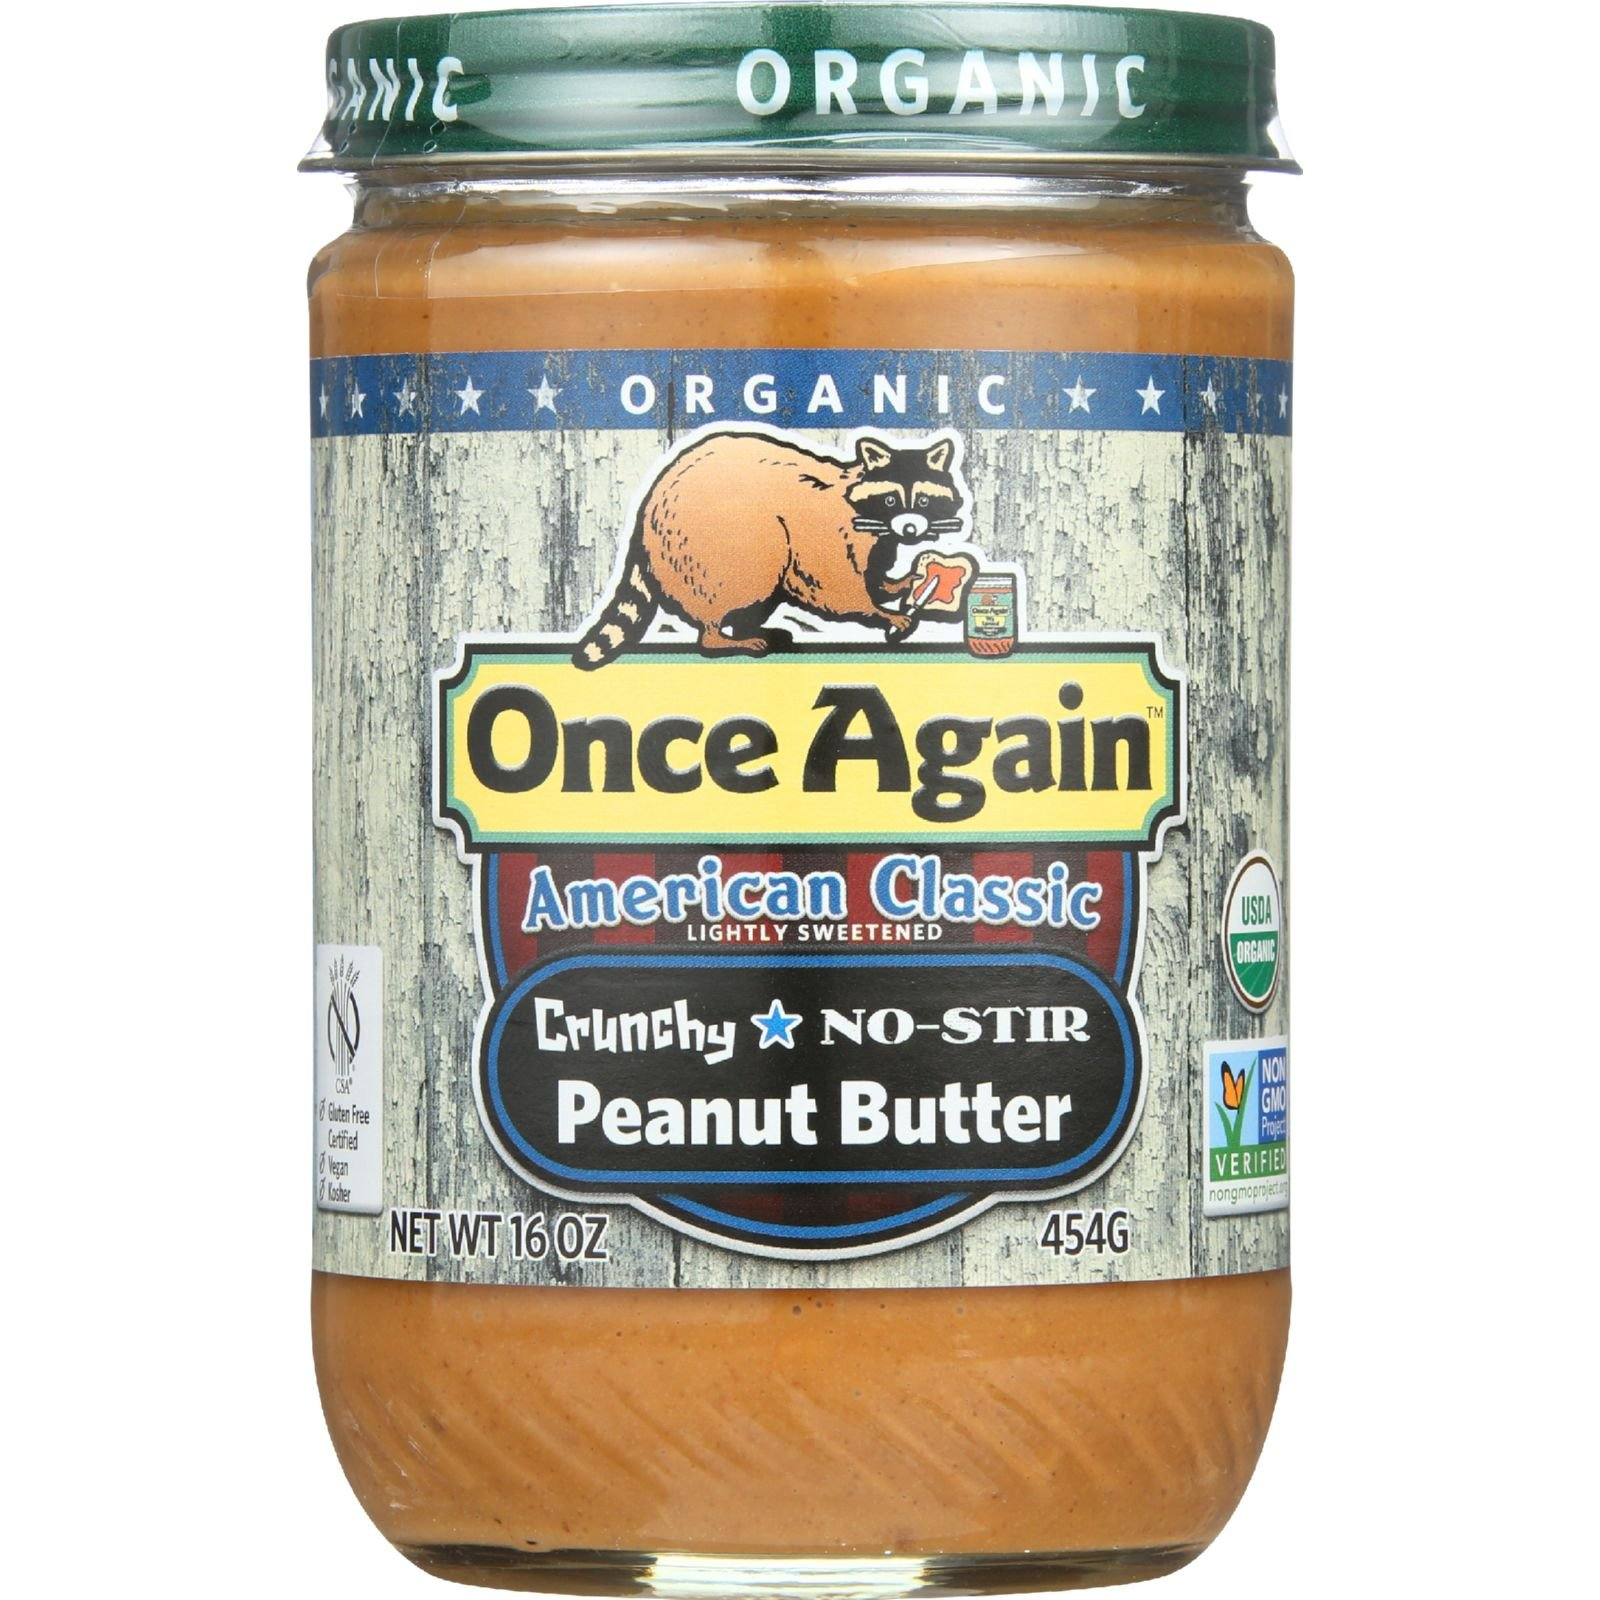 Once Again Peanut Butter Classic Crunchy Or, 16 oz